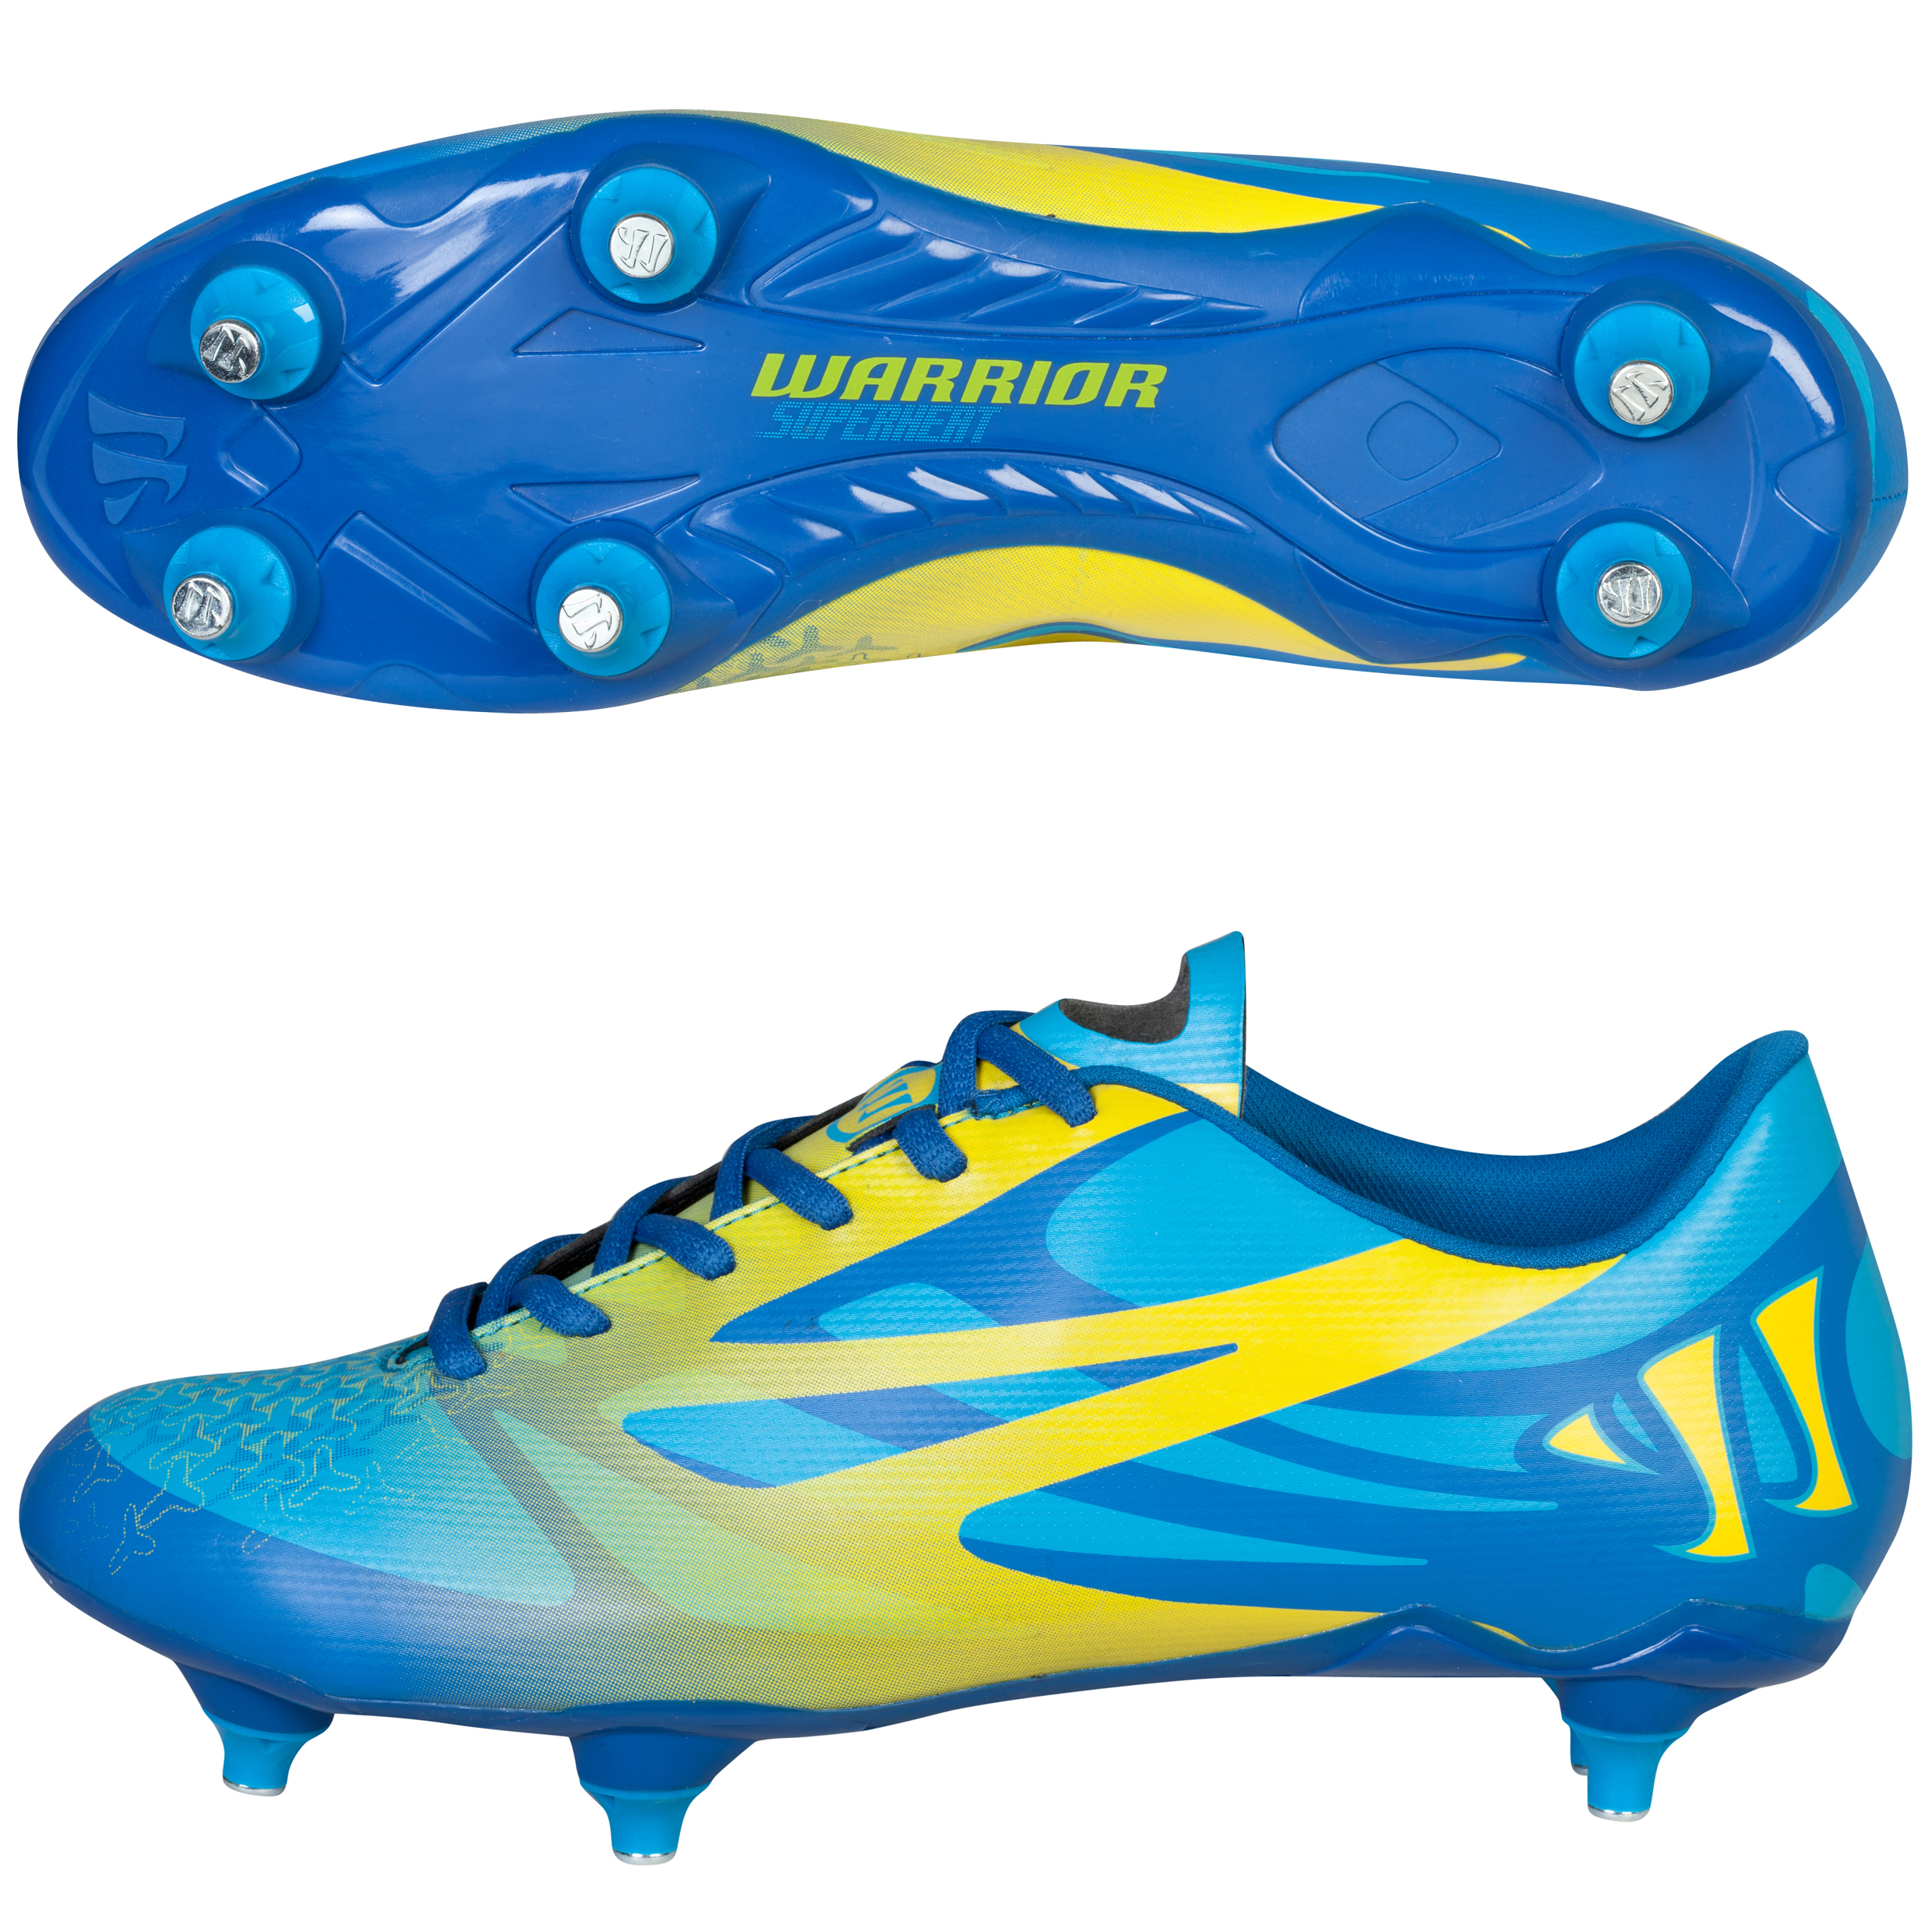 Warrior Superheat Combat Soft Ground Football Boots Blue